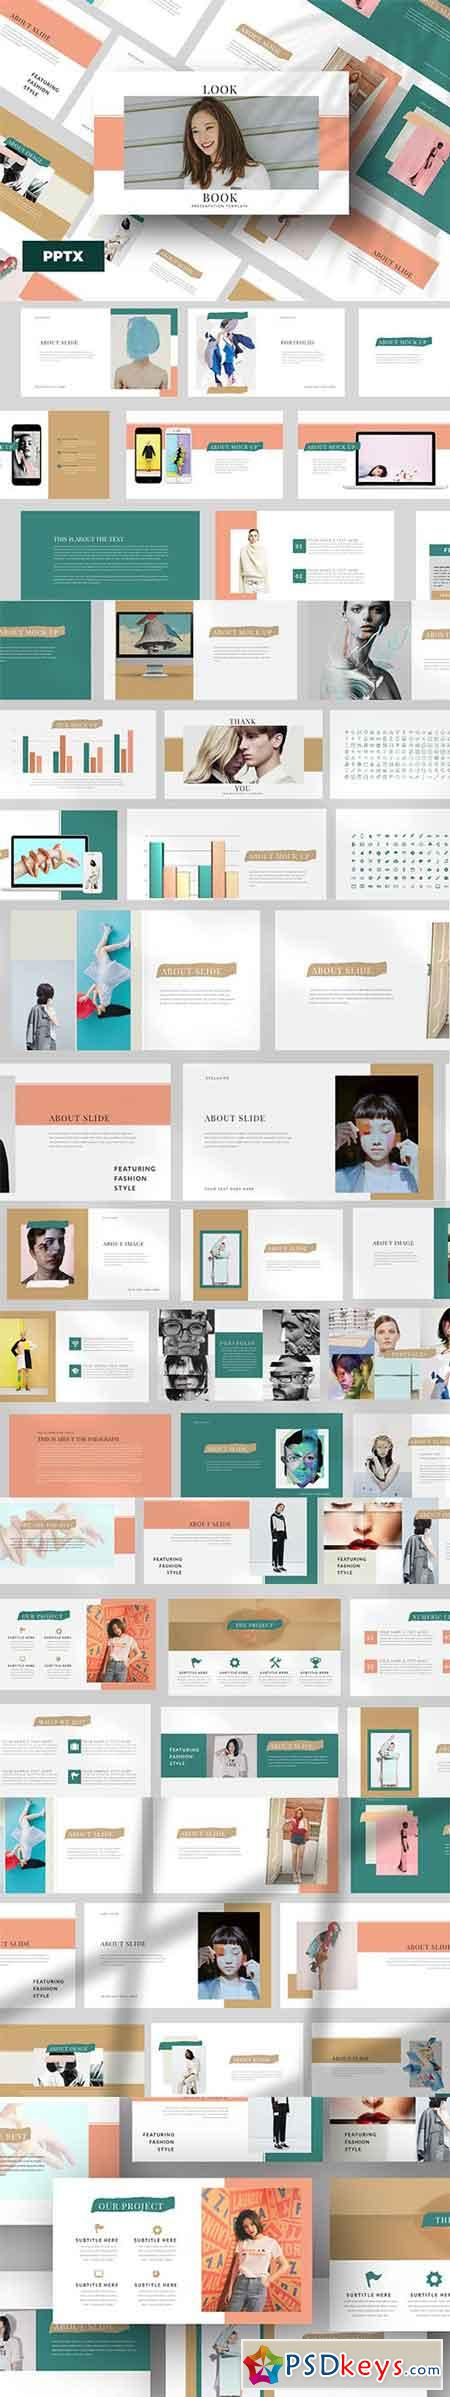 Lookbook Powerpoint and Keynote Templates